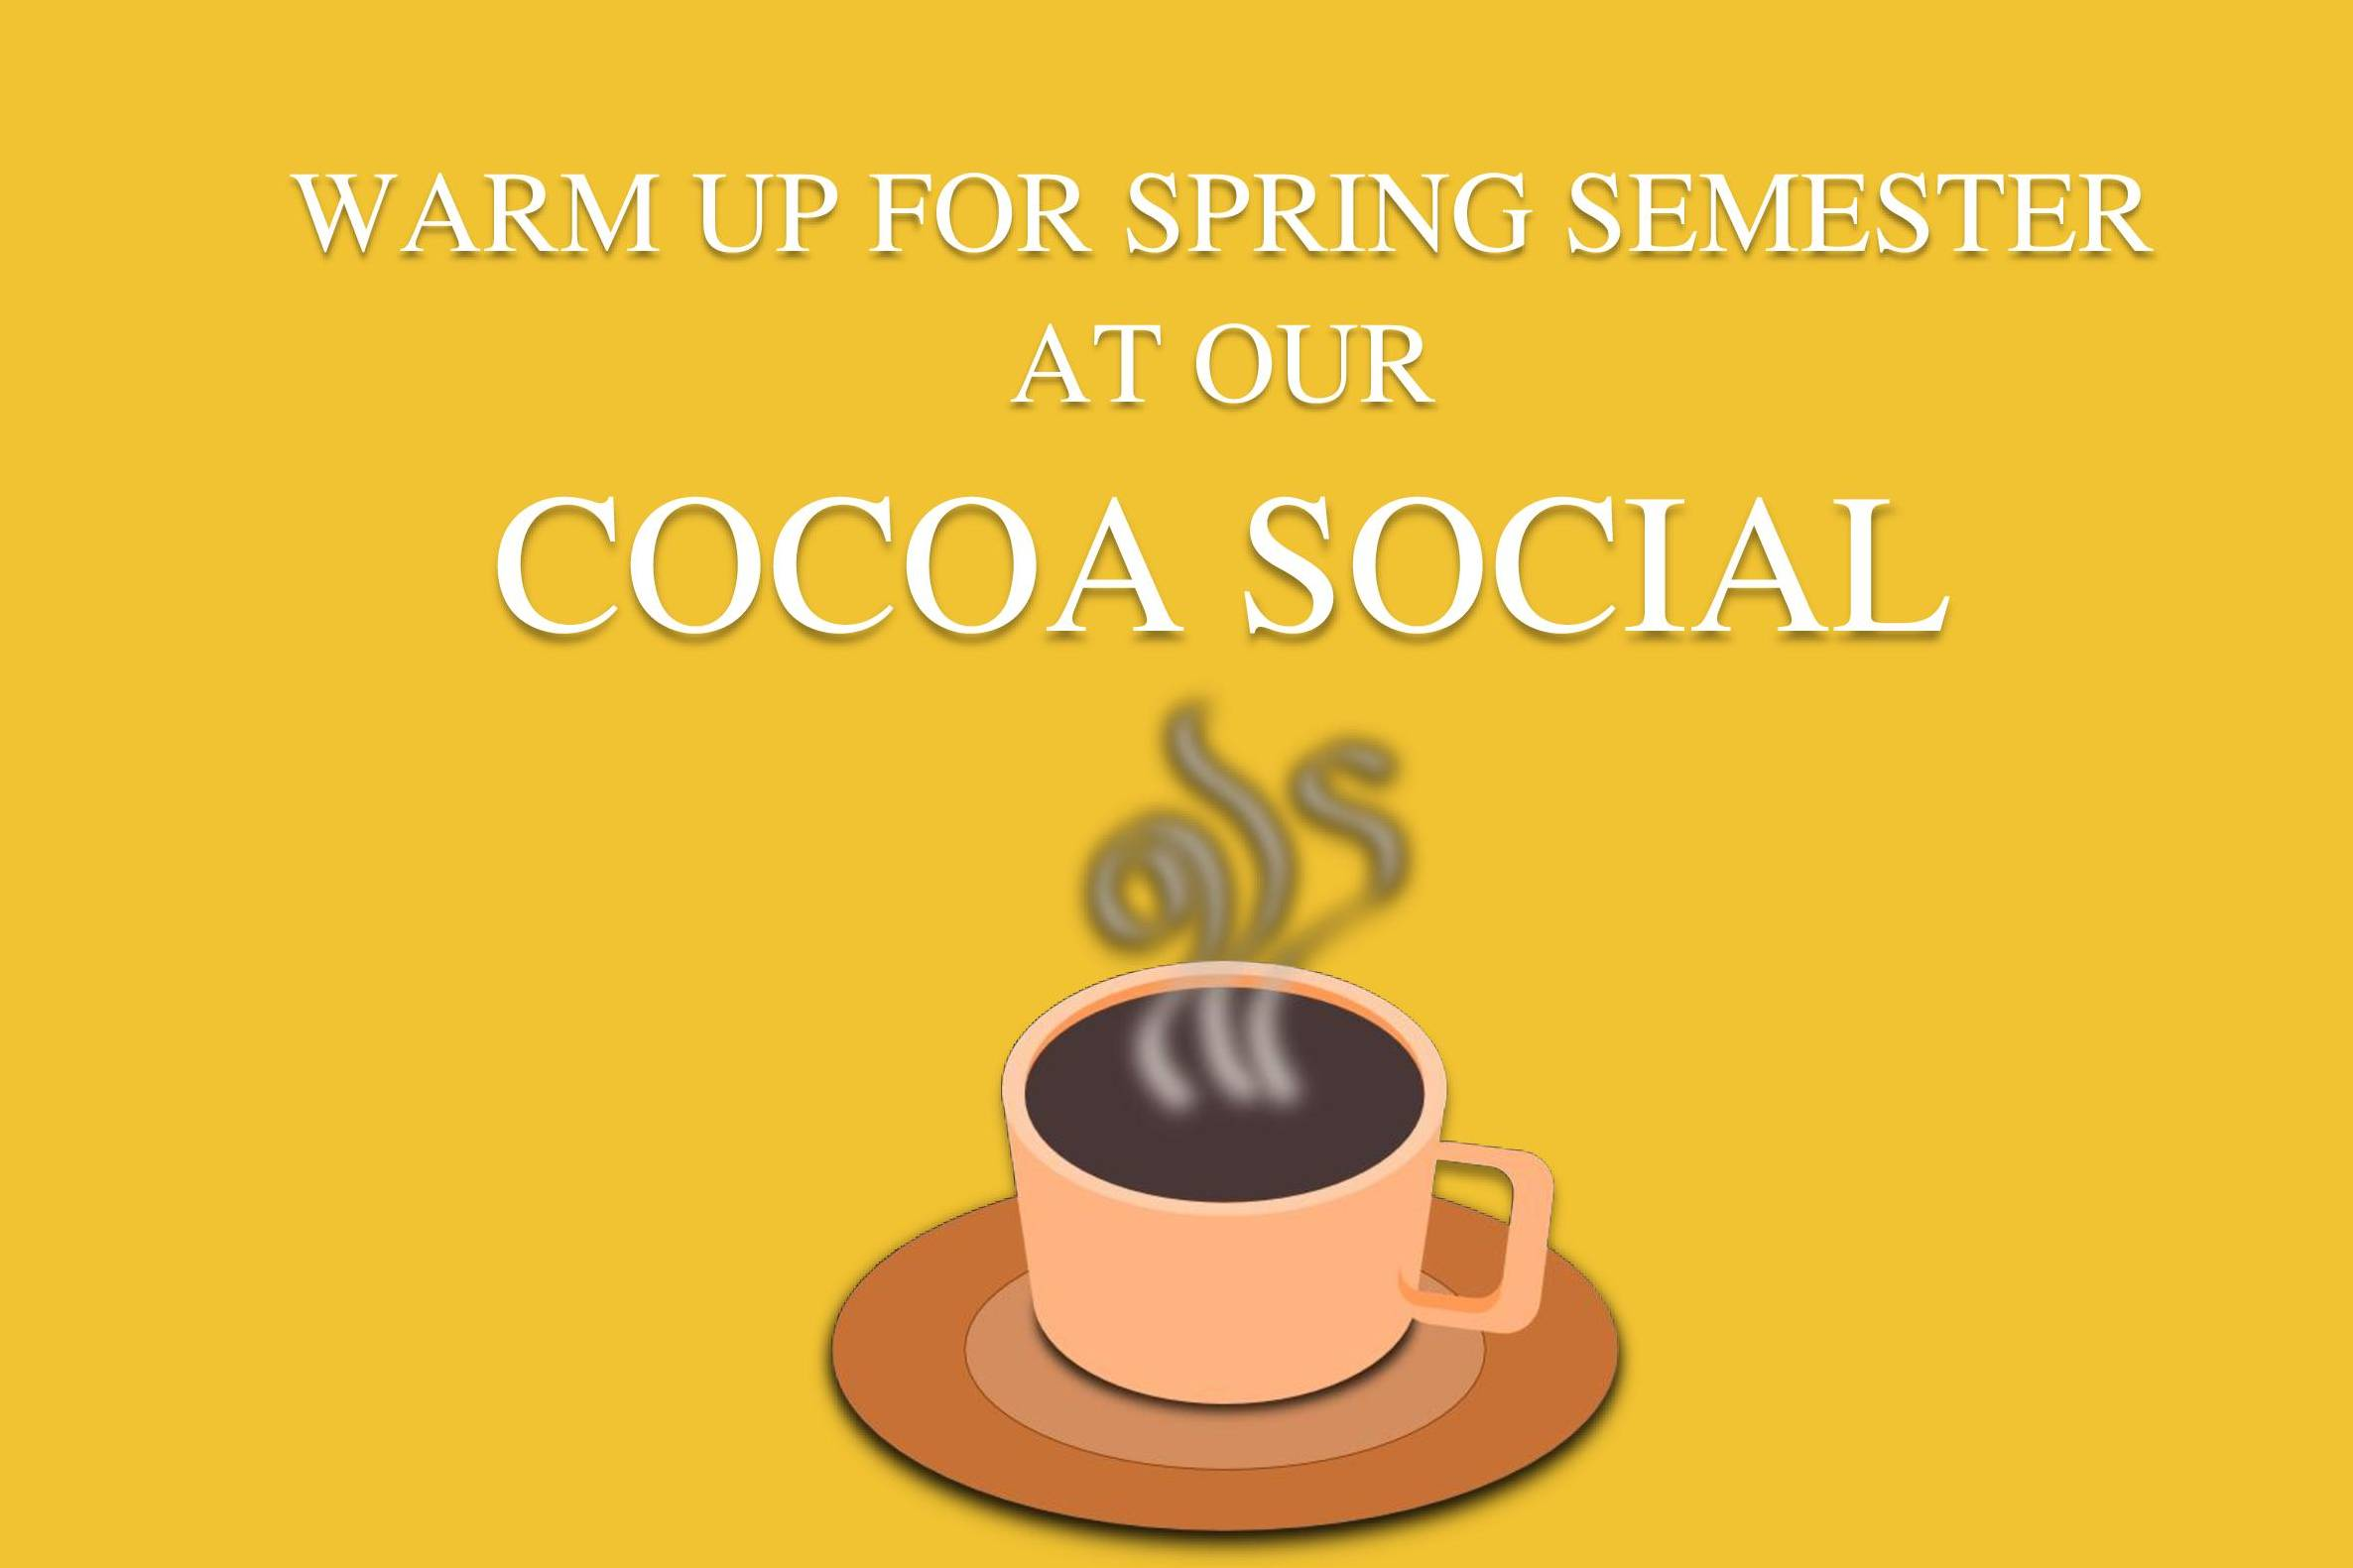 Students interested in the Honors Program at San Diego Mesa College are invited to a Hot Cocoa Social on Tuesday, Jan. 17 from 12:30 to 1:30 p.m. in G-101.